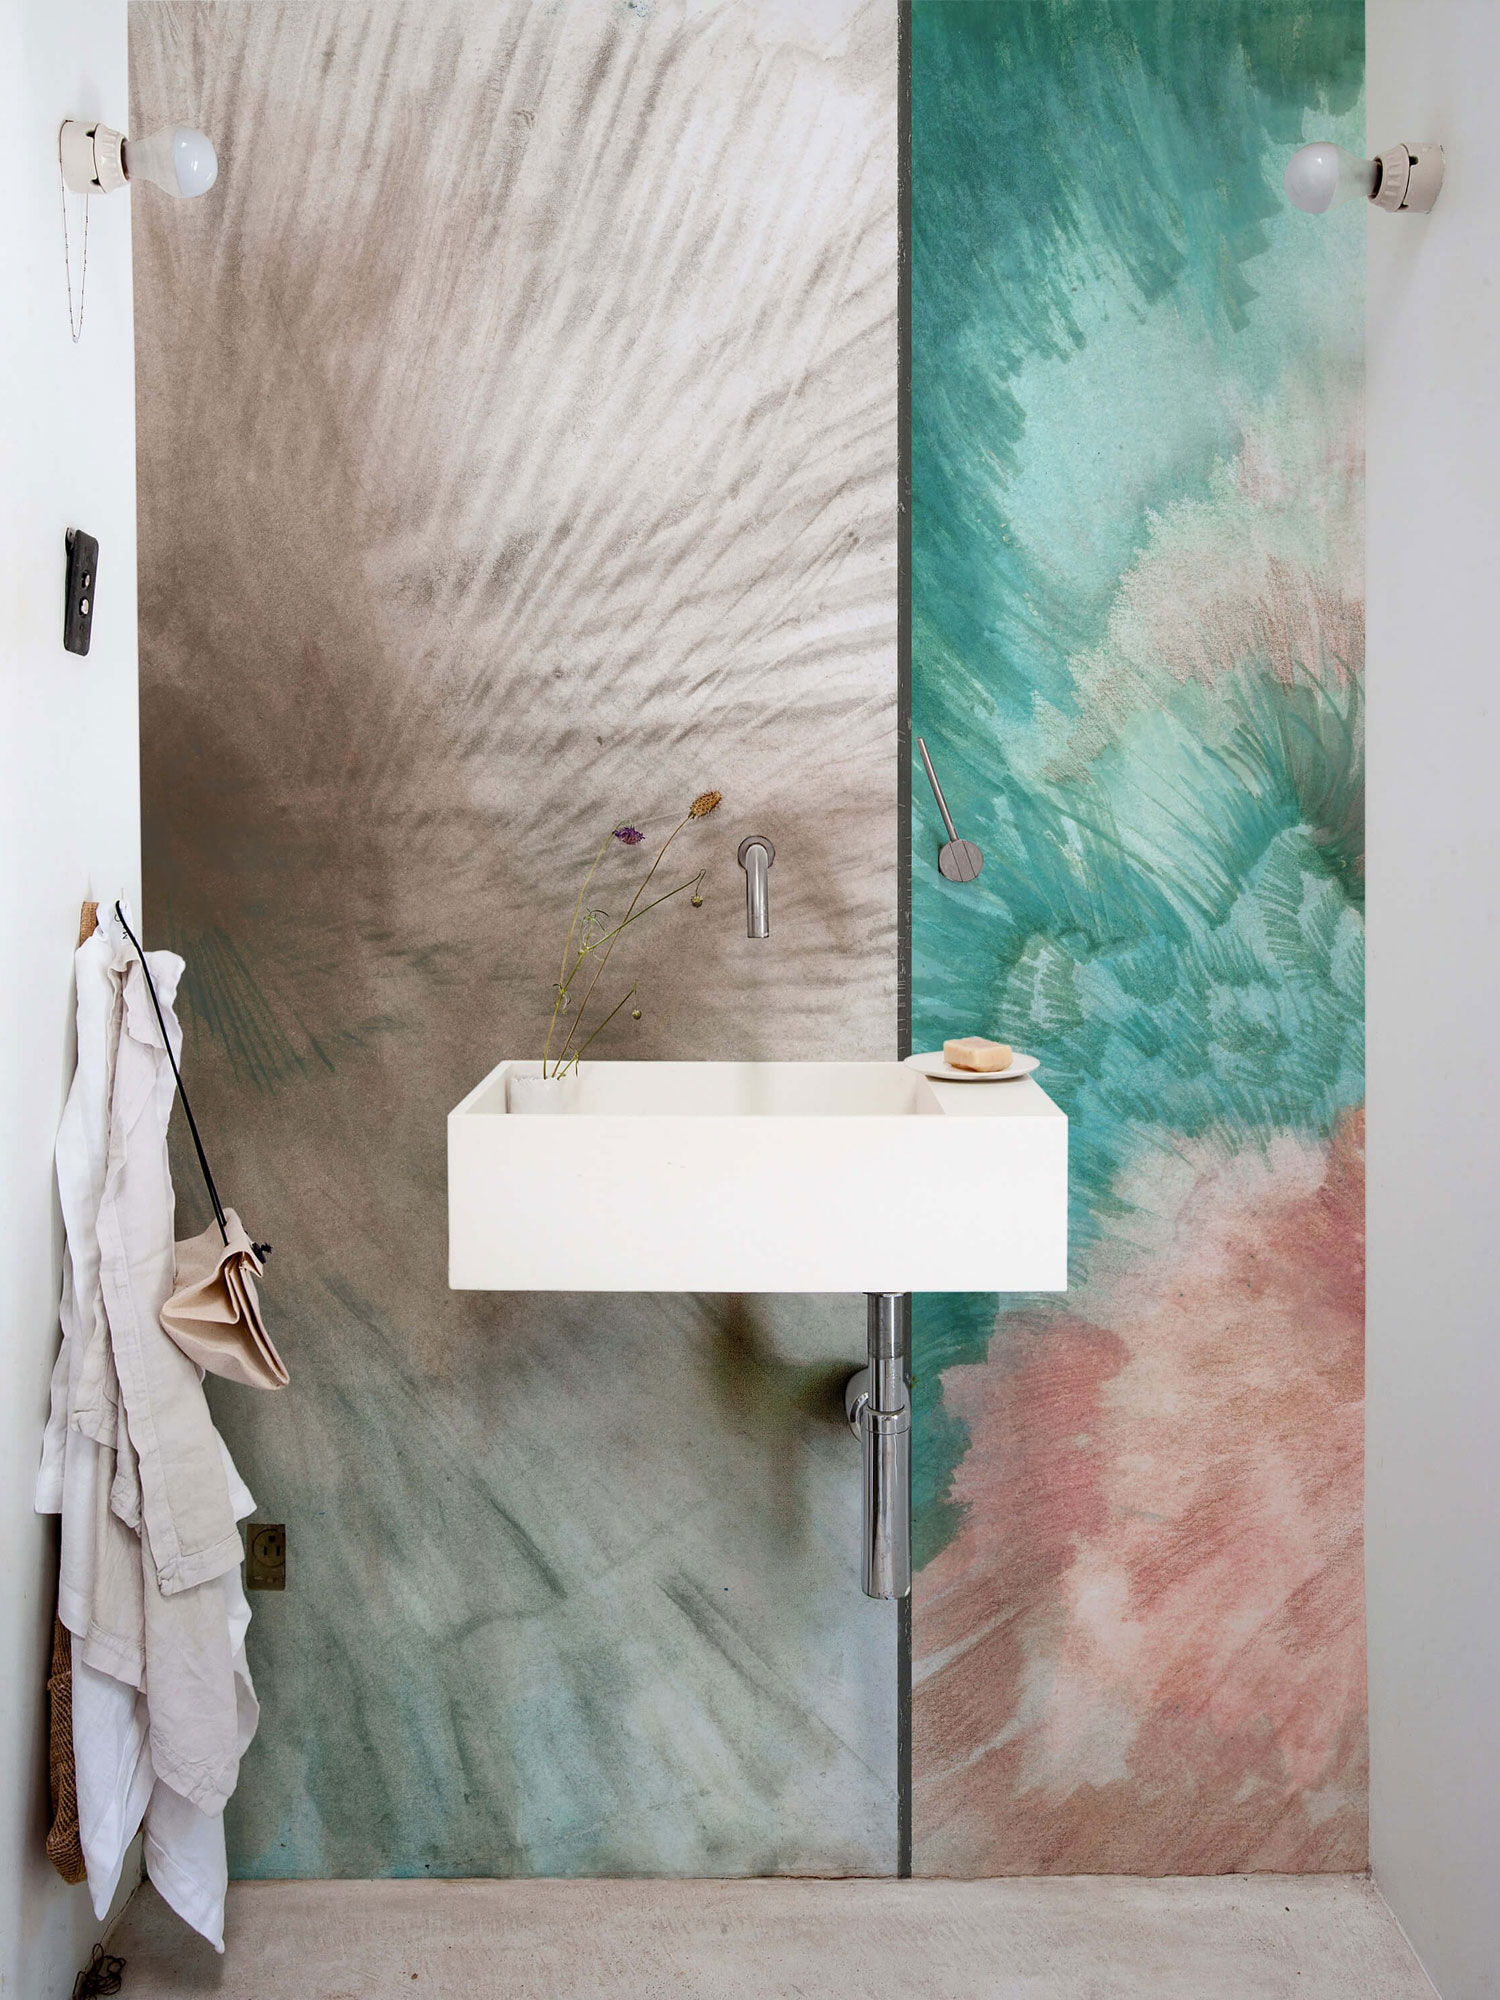 West One Bathrooms Inspiration Bold and beautiful image4b